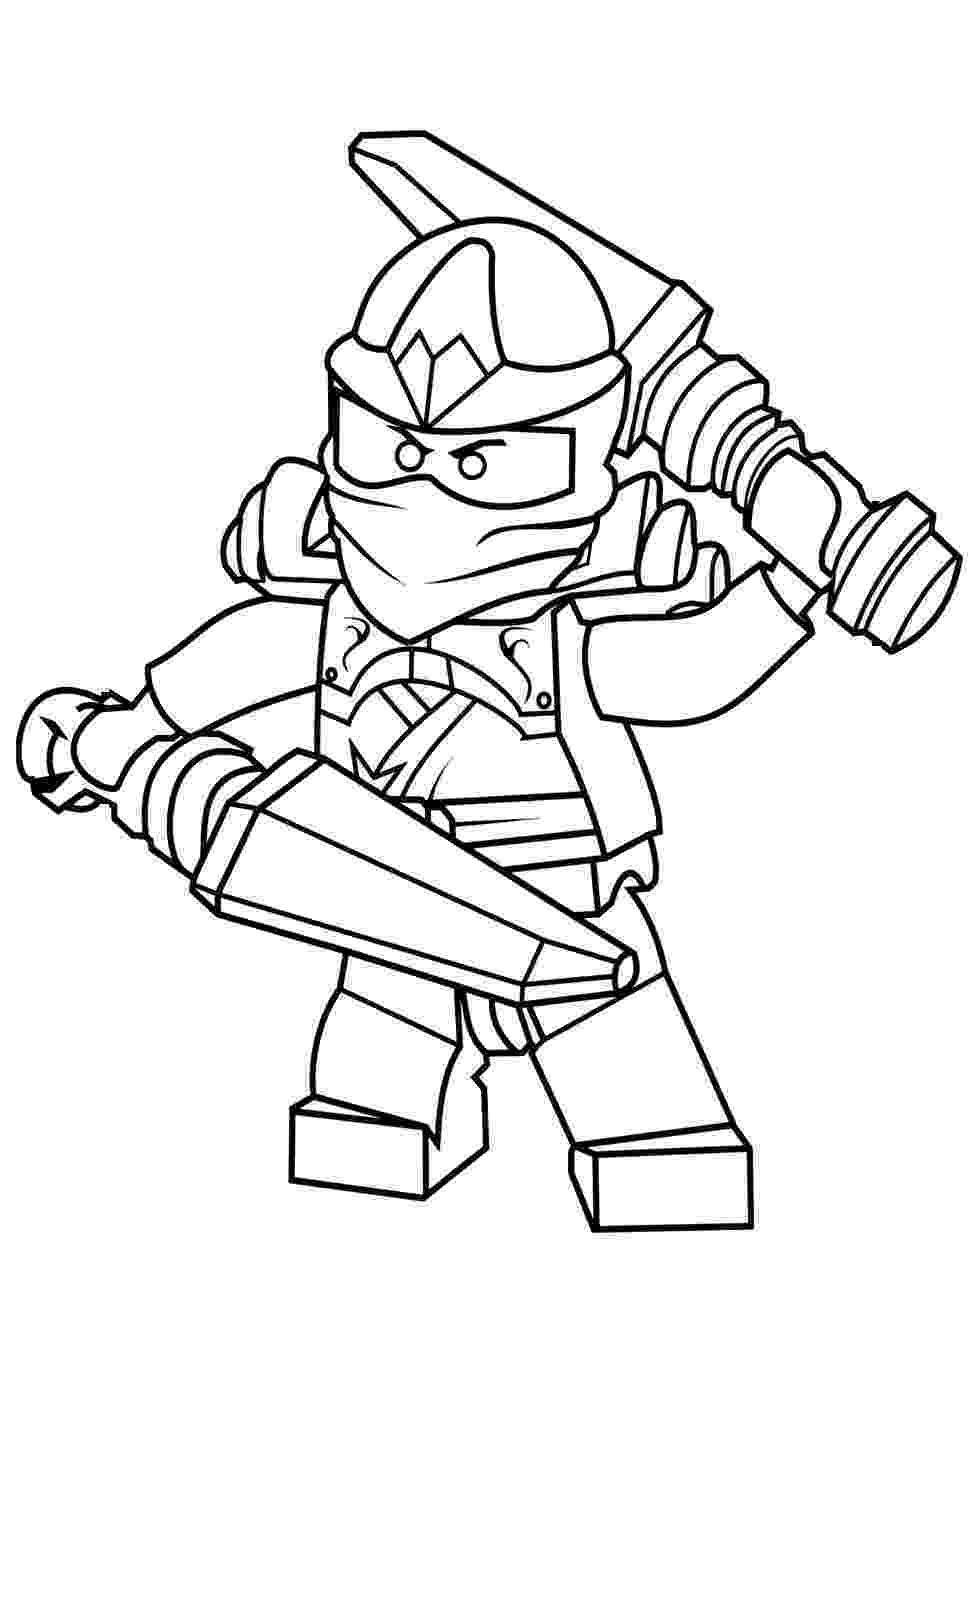 lego coloring lego ninjago coloring pages best coloring pages for kids coloring lego 1 1